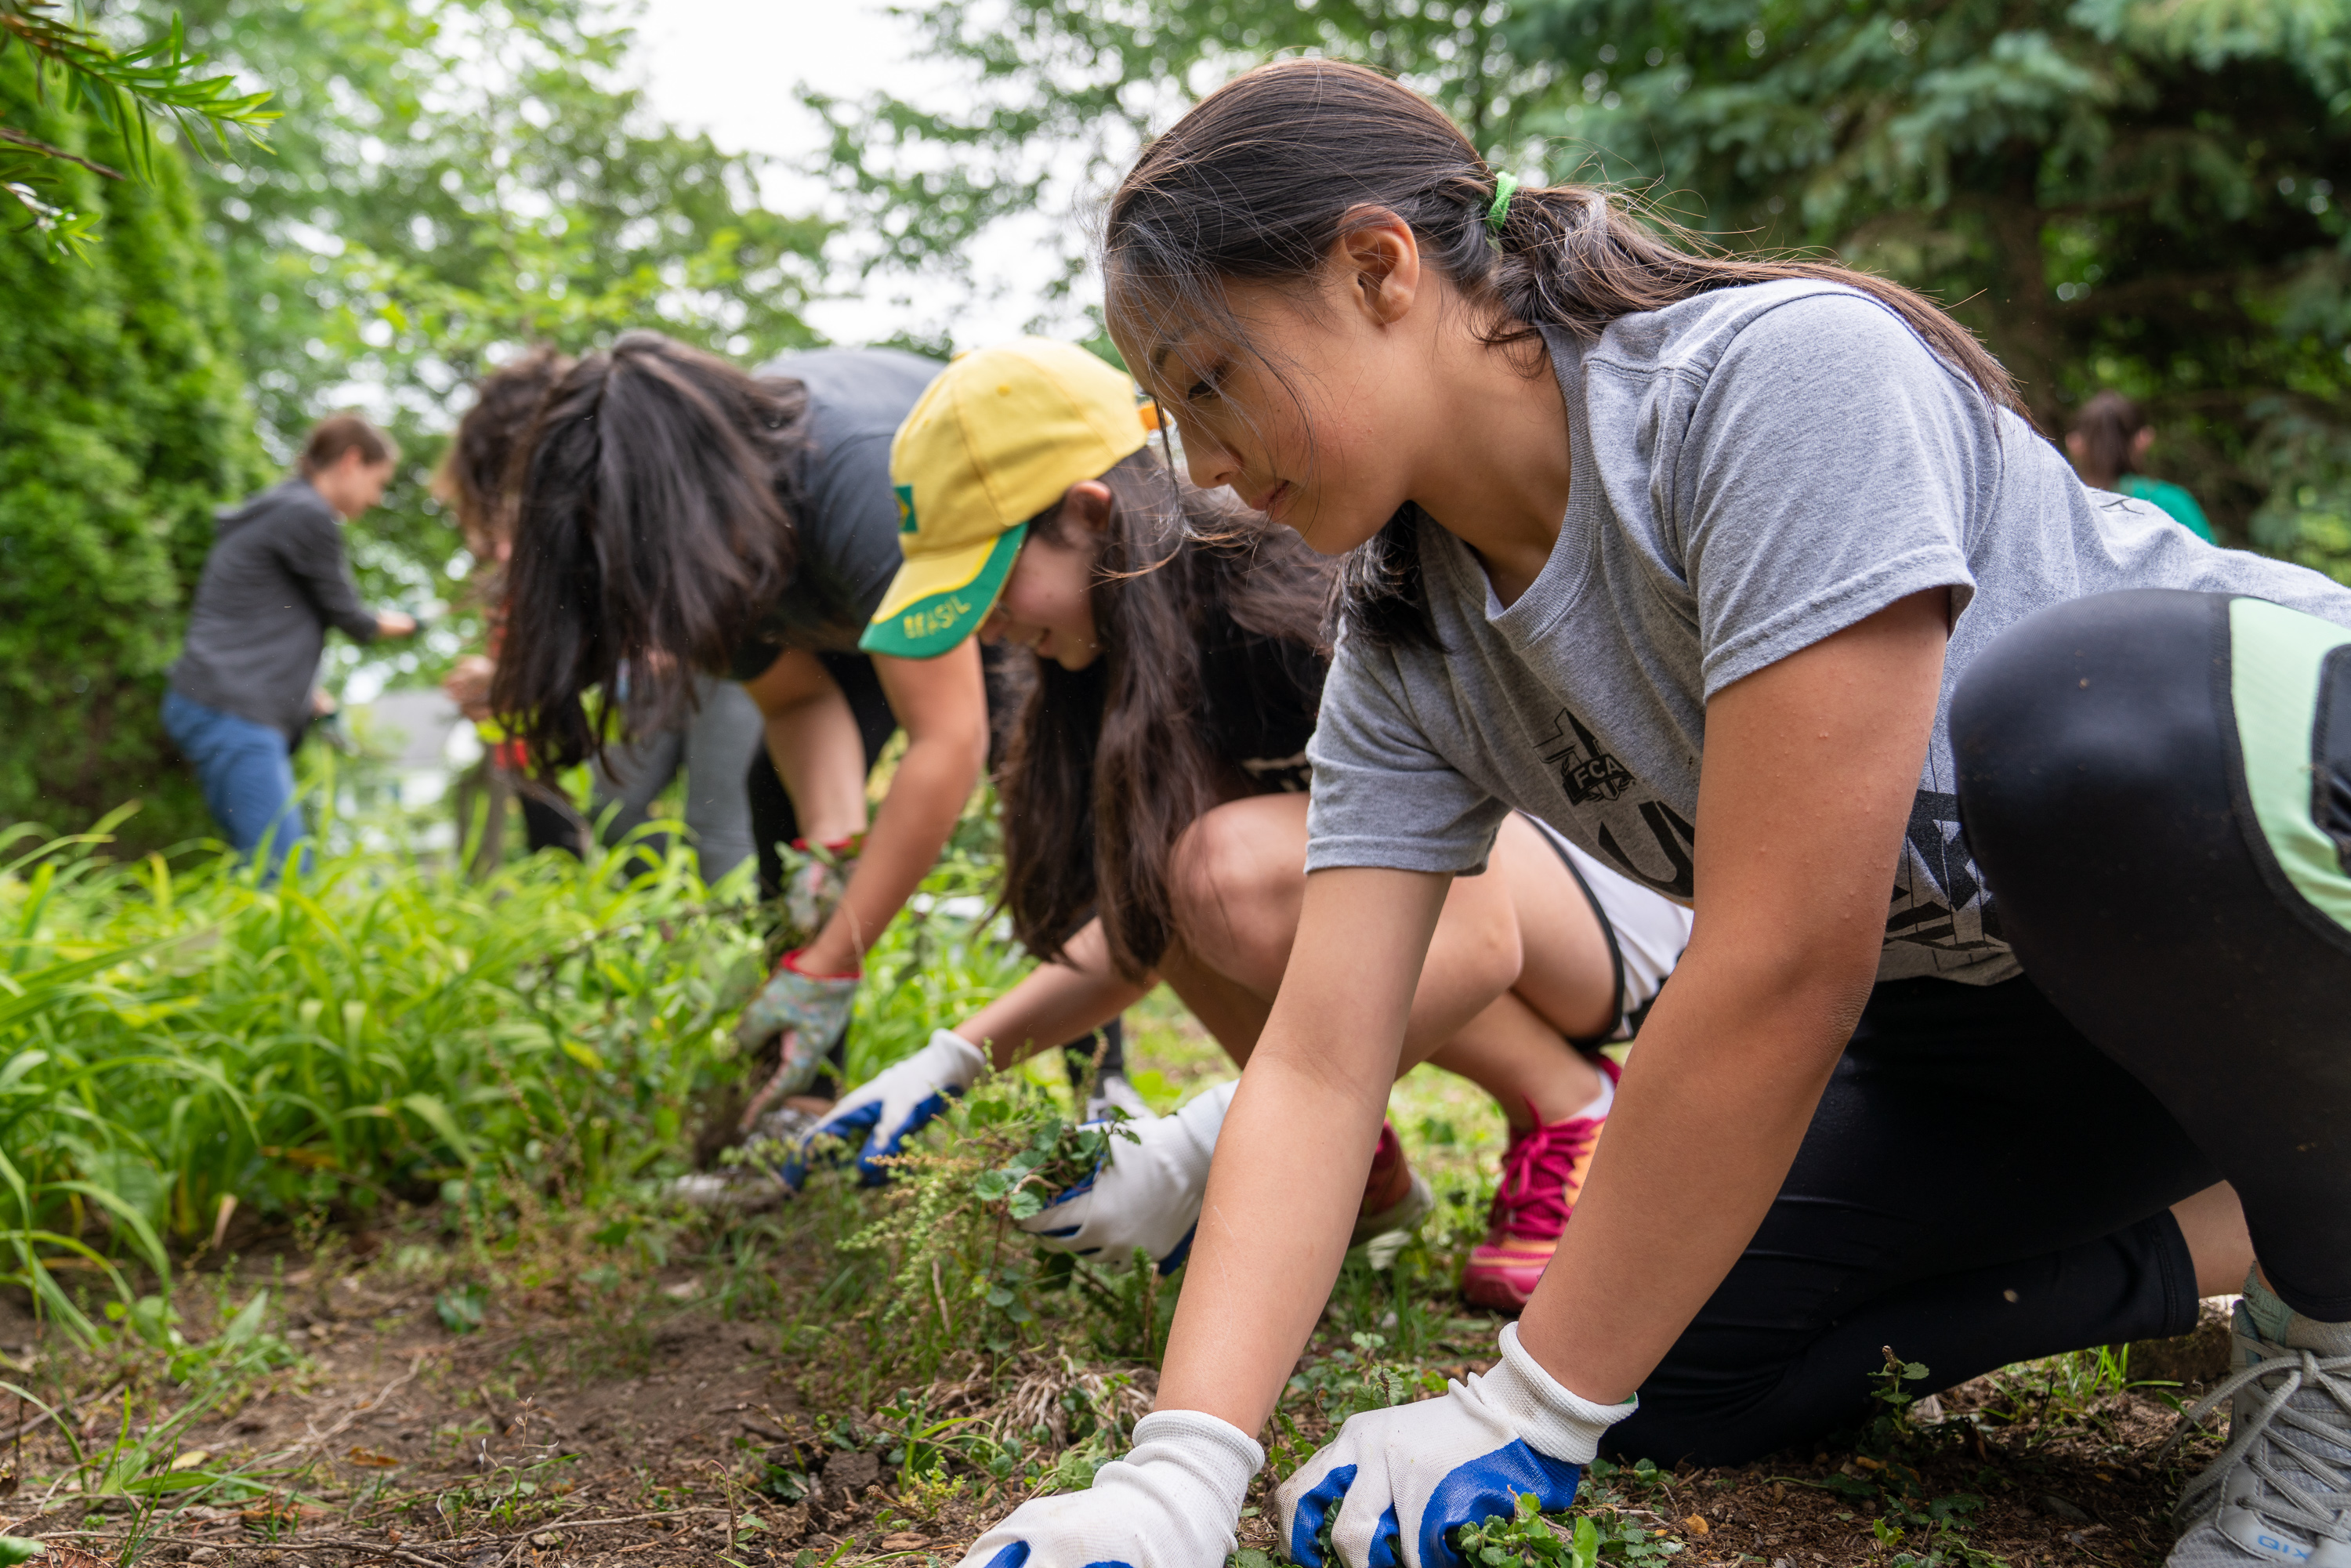 Young women participate in a service project in Columbus, Ohio. Service and activities is a key component of the new Children and Youth program.